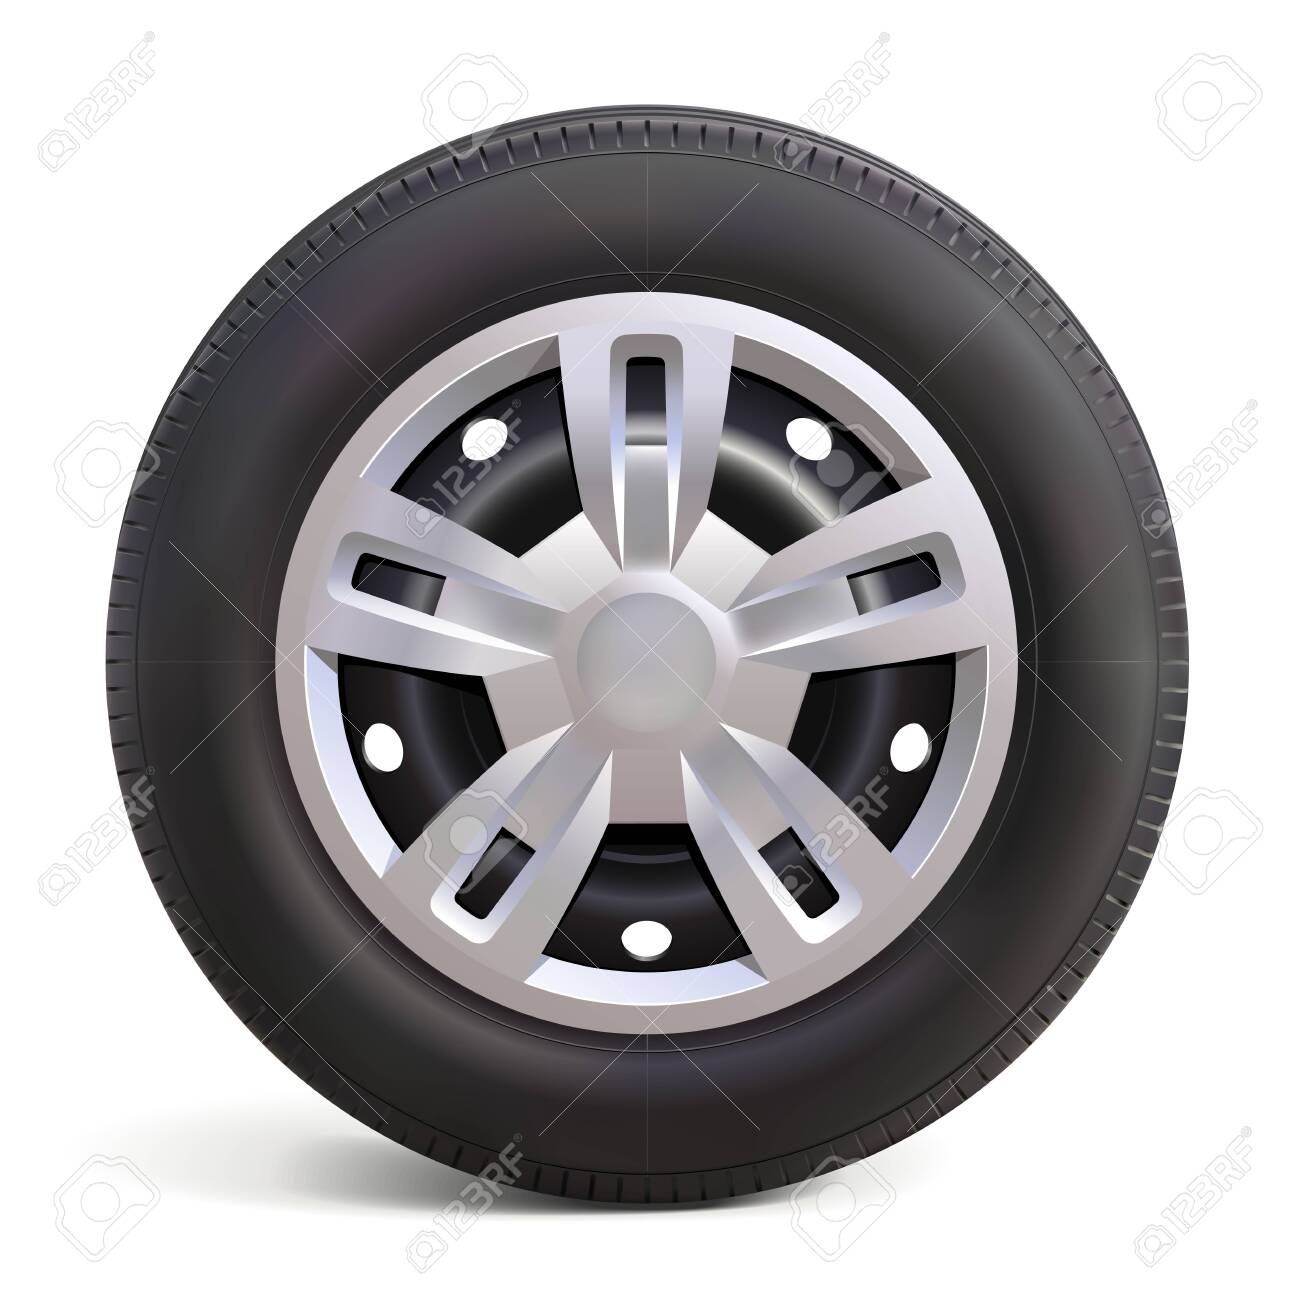 Vector Car Wheel with Disk isolated on white background - 141893655